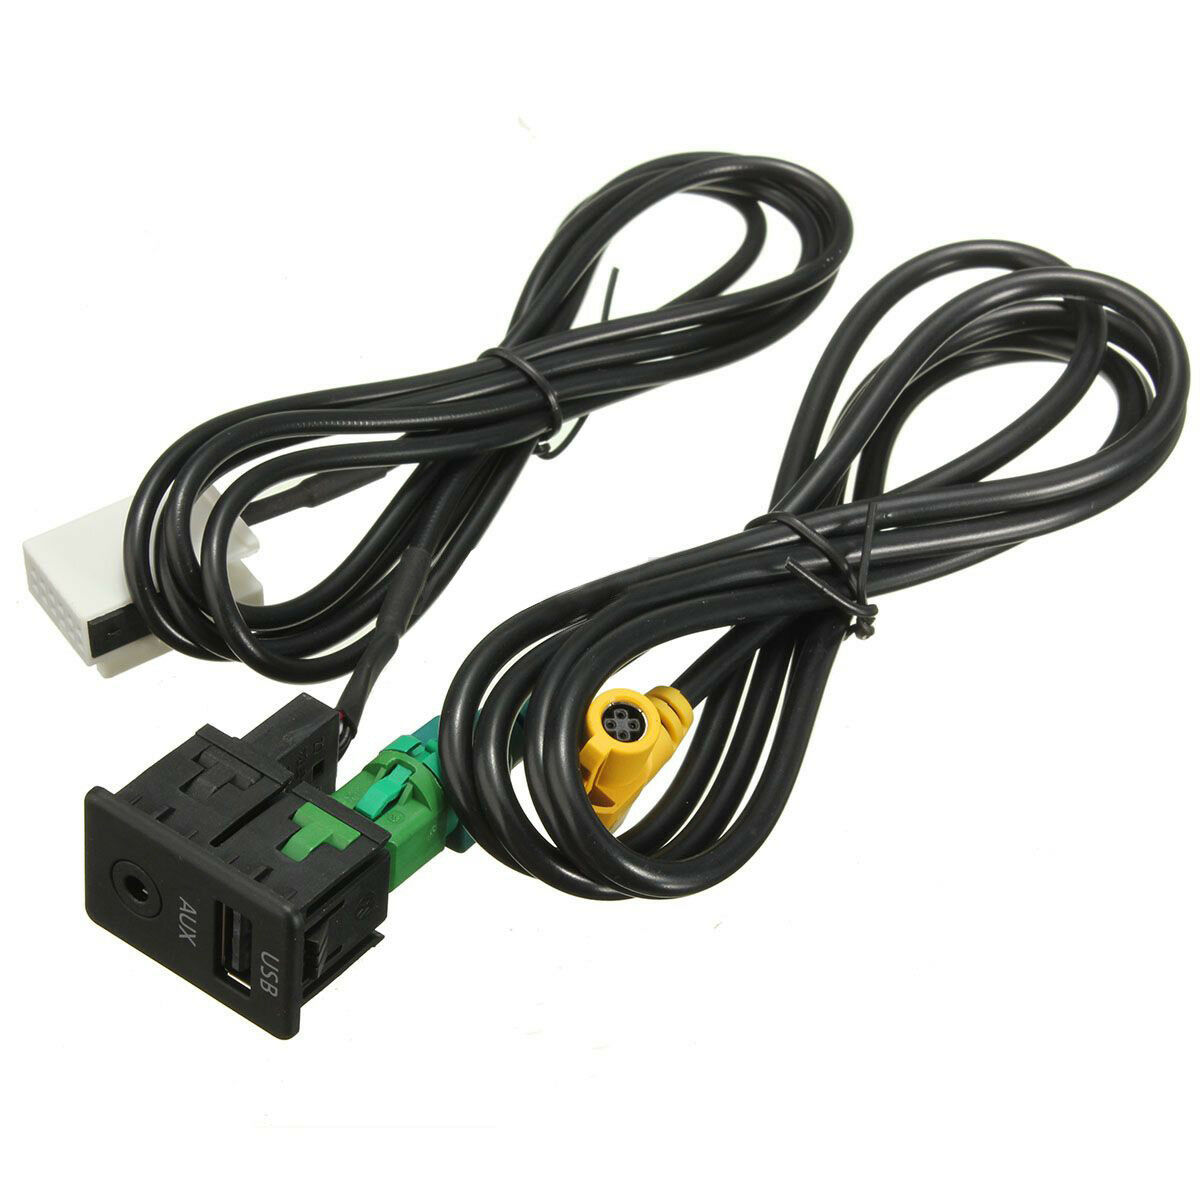 USB AUX SWITCH & USB Wire Cable Adapter For 3 5 series E87 E90 E91 ...